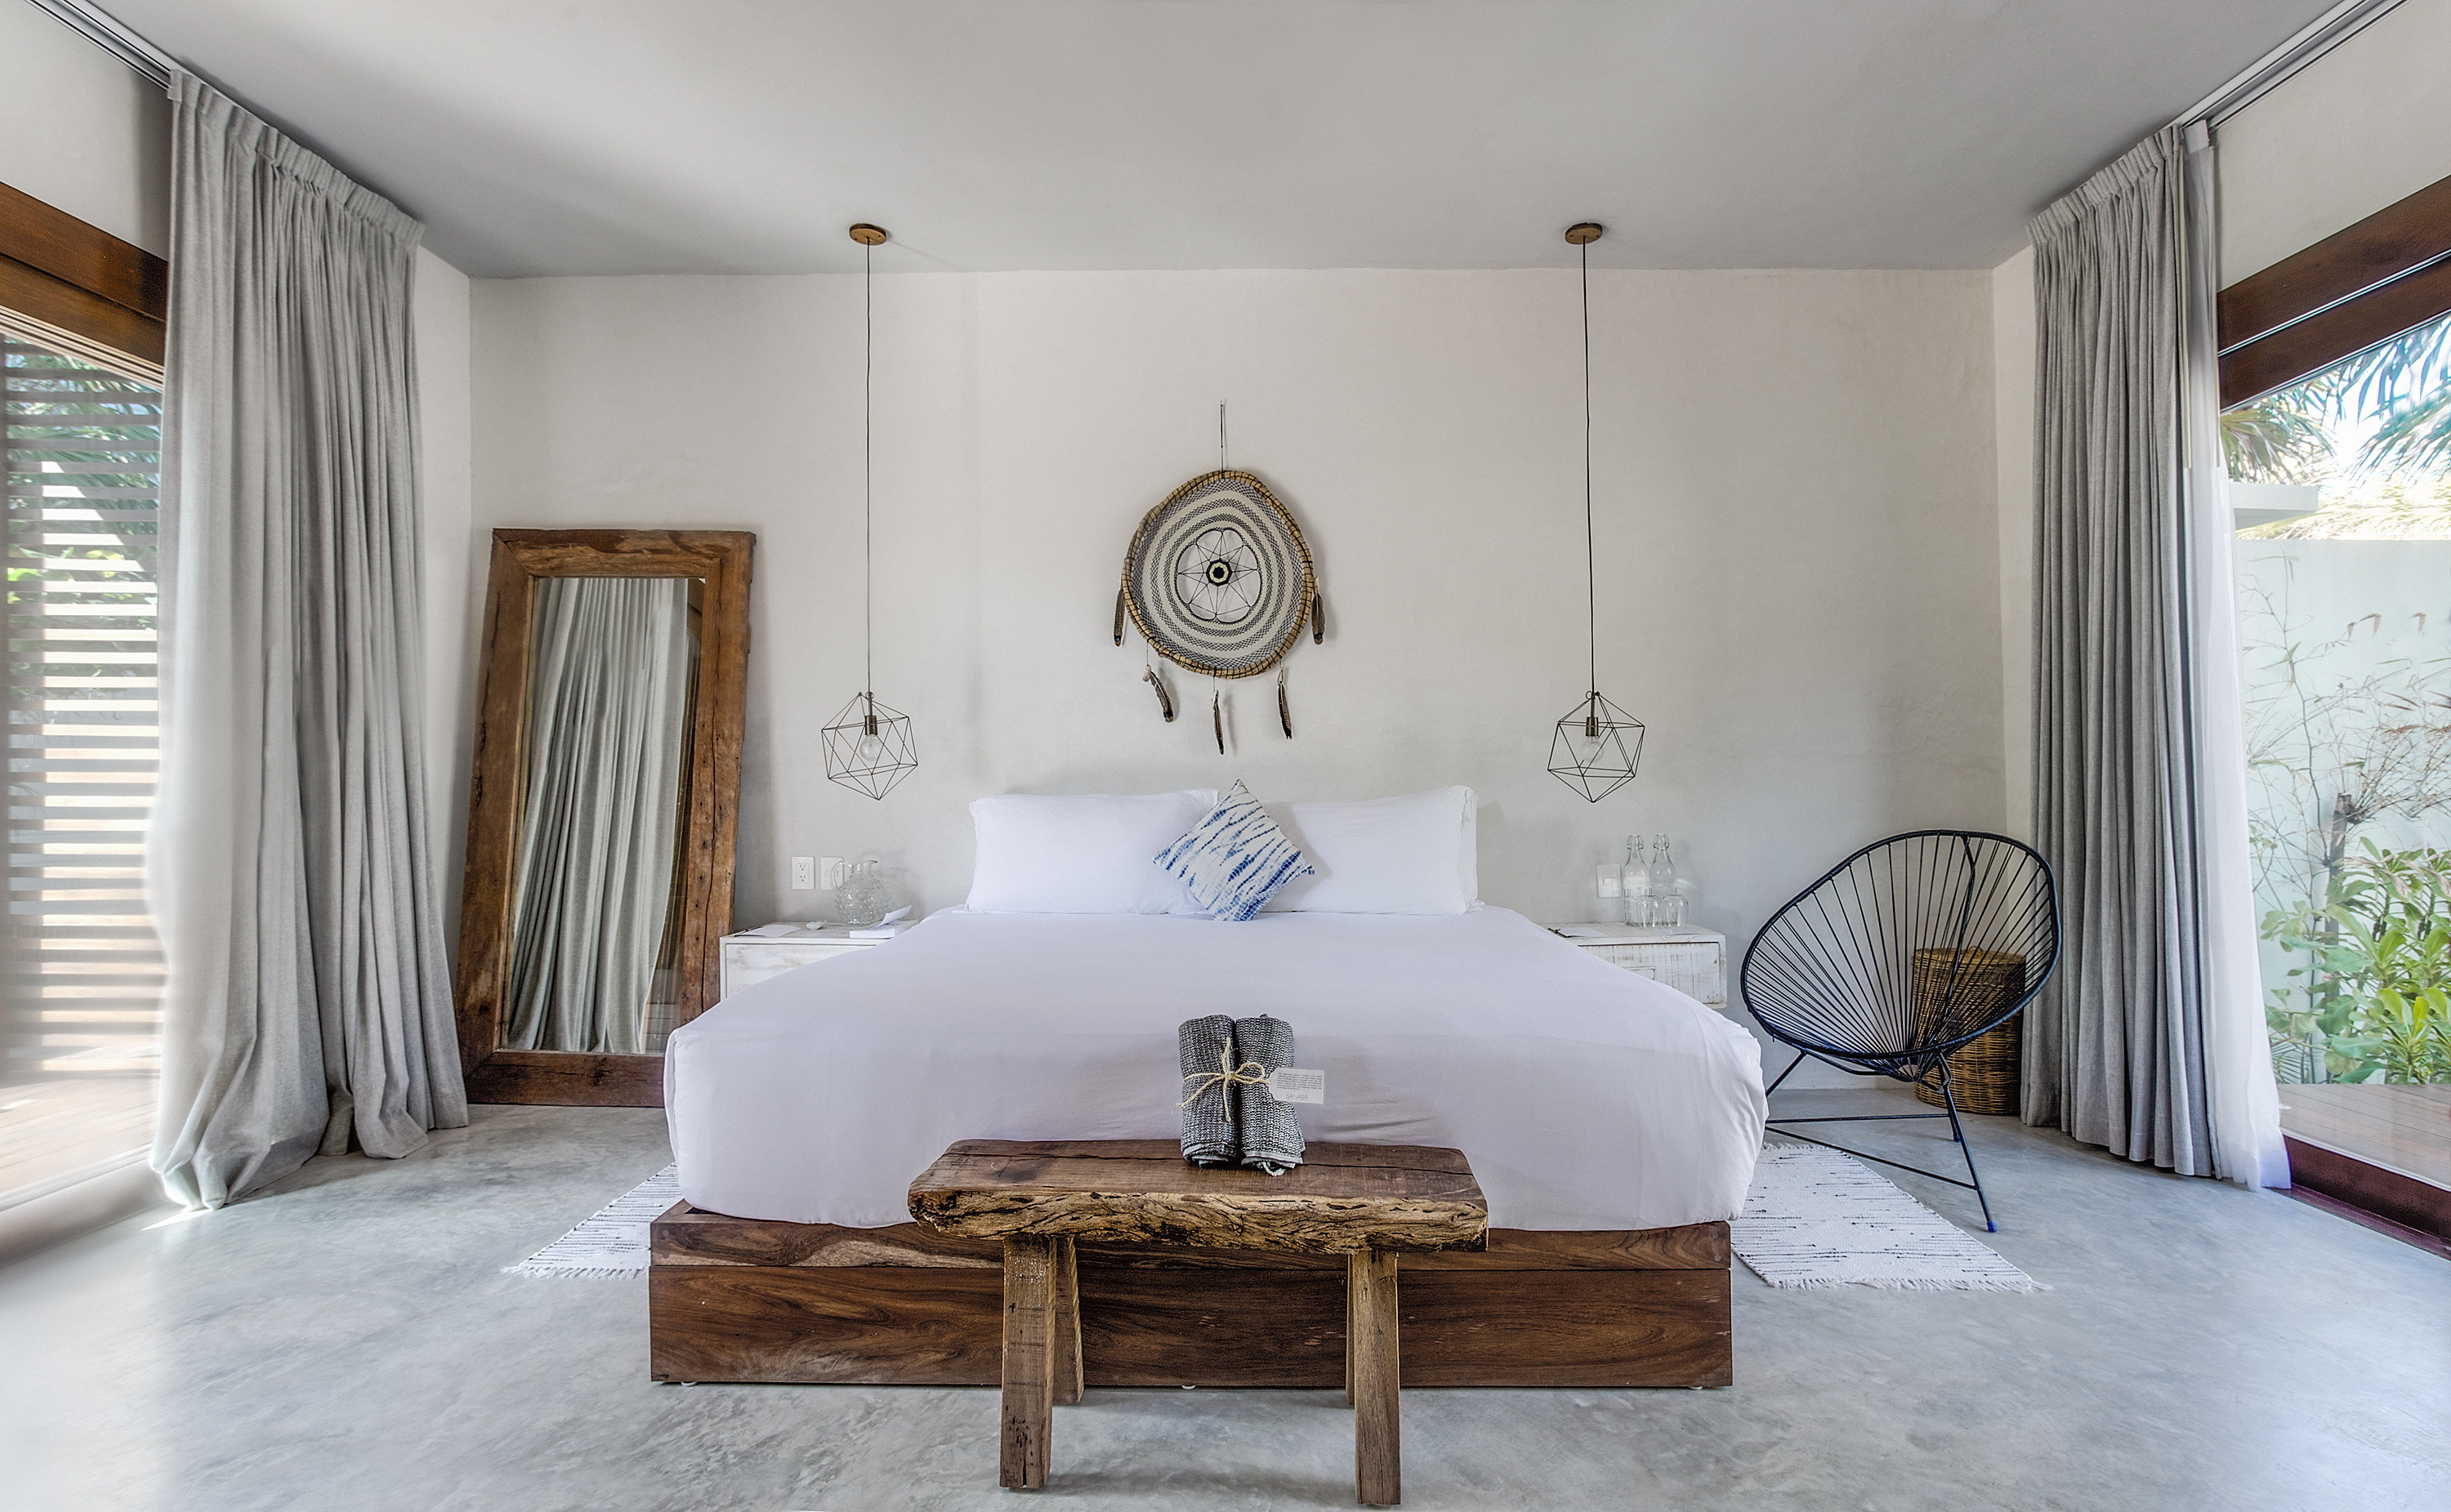 Boutique Hotels City Hotels Mexico Trip Ideas Tulum indoor floor wall room Living window Bedroom property furniture estate ceiling home interior design living room bed real estate cottage bed frame Design Suite mansion area